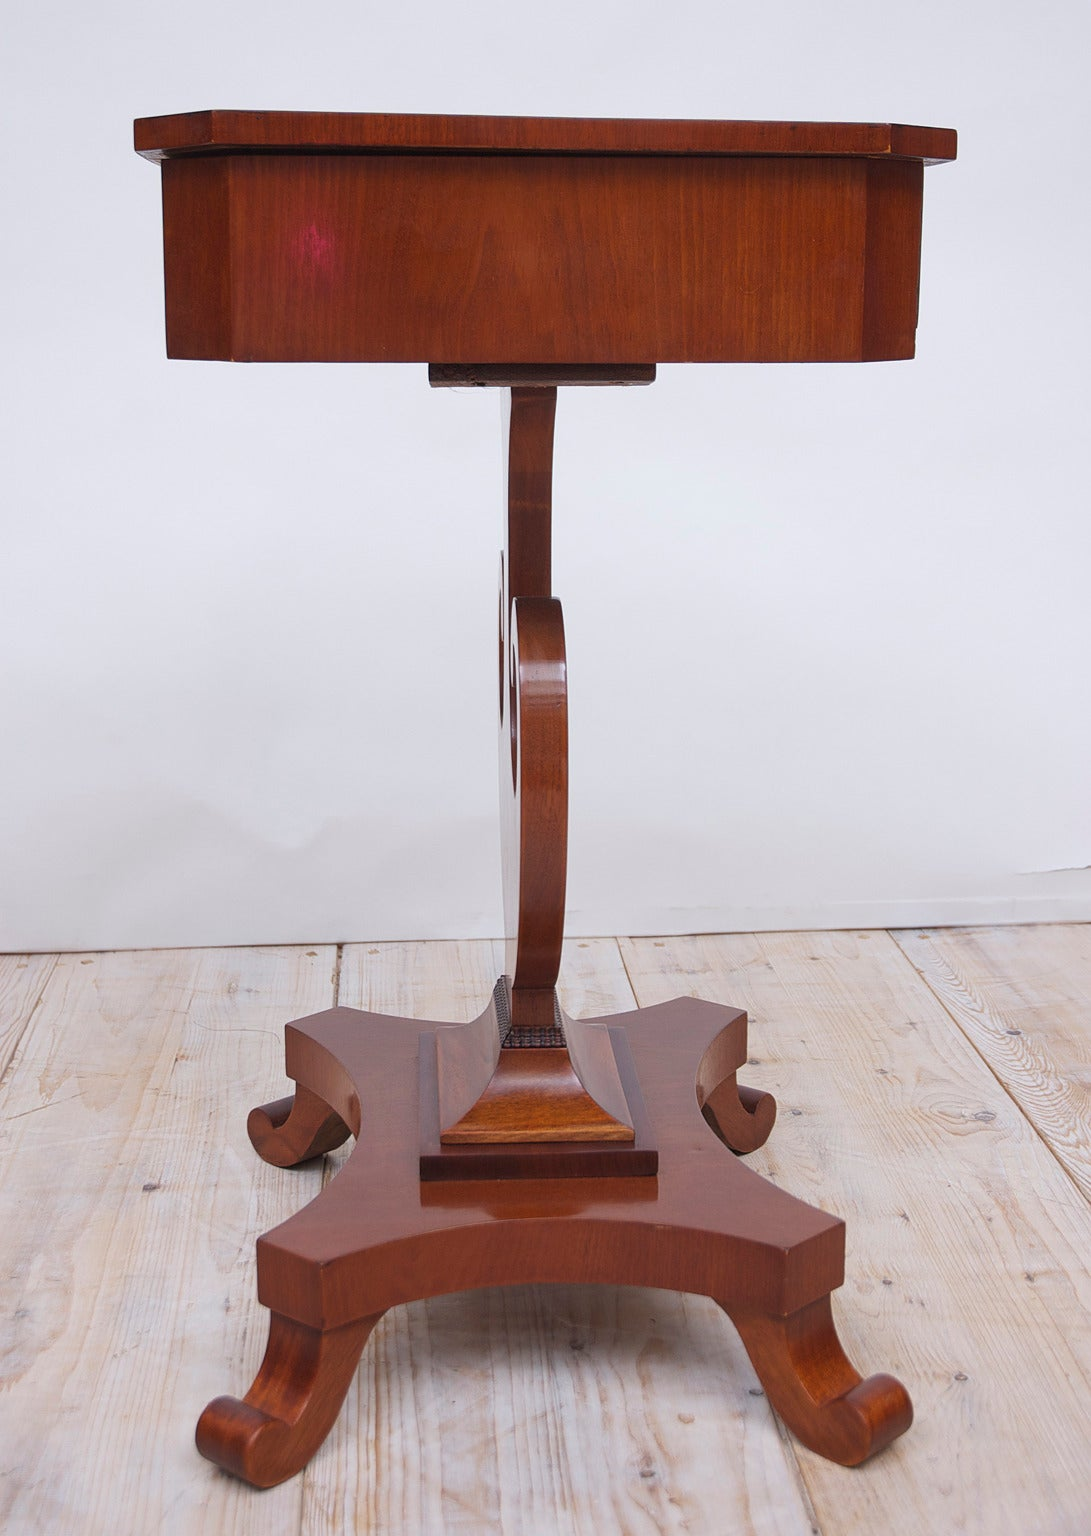 Antique Karl Johan Side Table with Lyre Base in Mahogany, Sweden, circa 1845 8